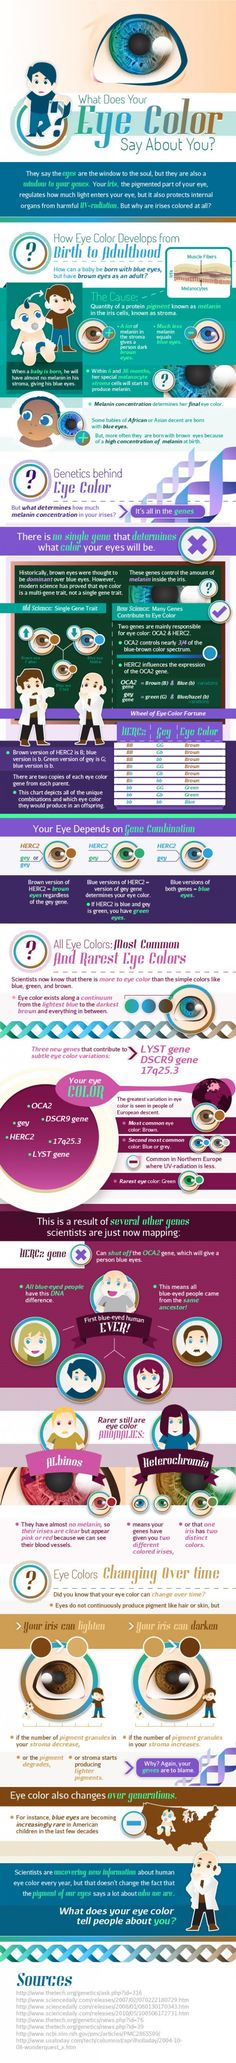 What Does Your Eye Color Say about You? Infographic